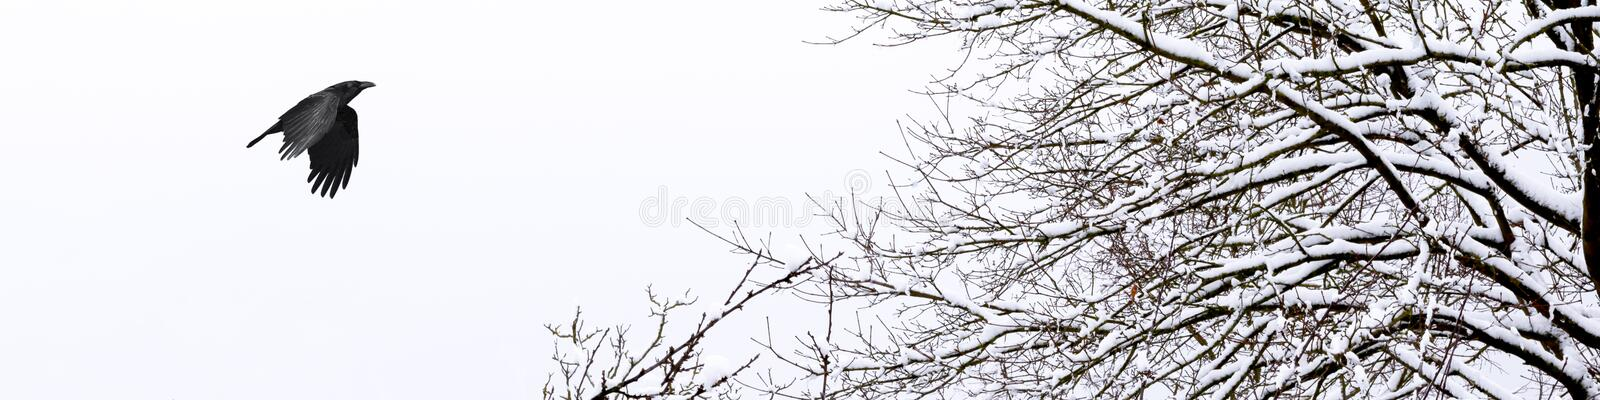 Horizontal banner of a cold and snowy winter. Horizontal banner of a cold winter white day with a raven in the sky